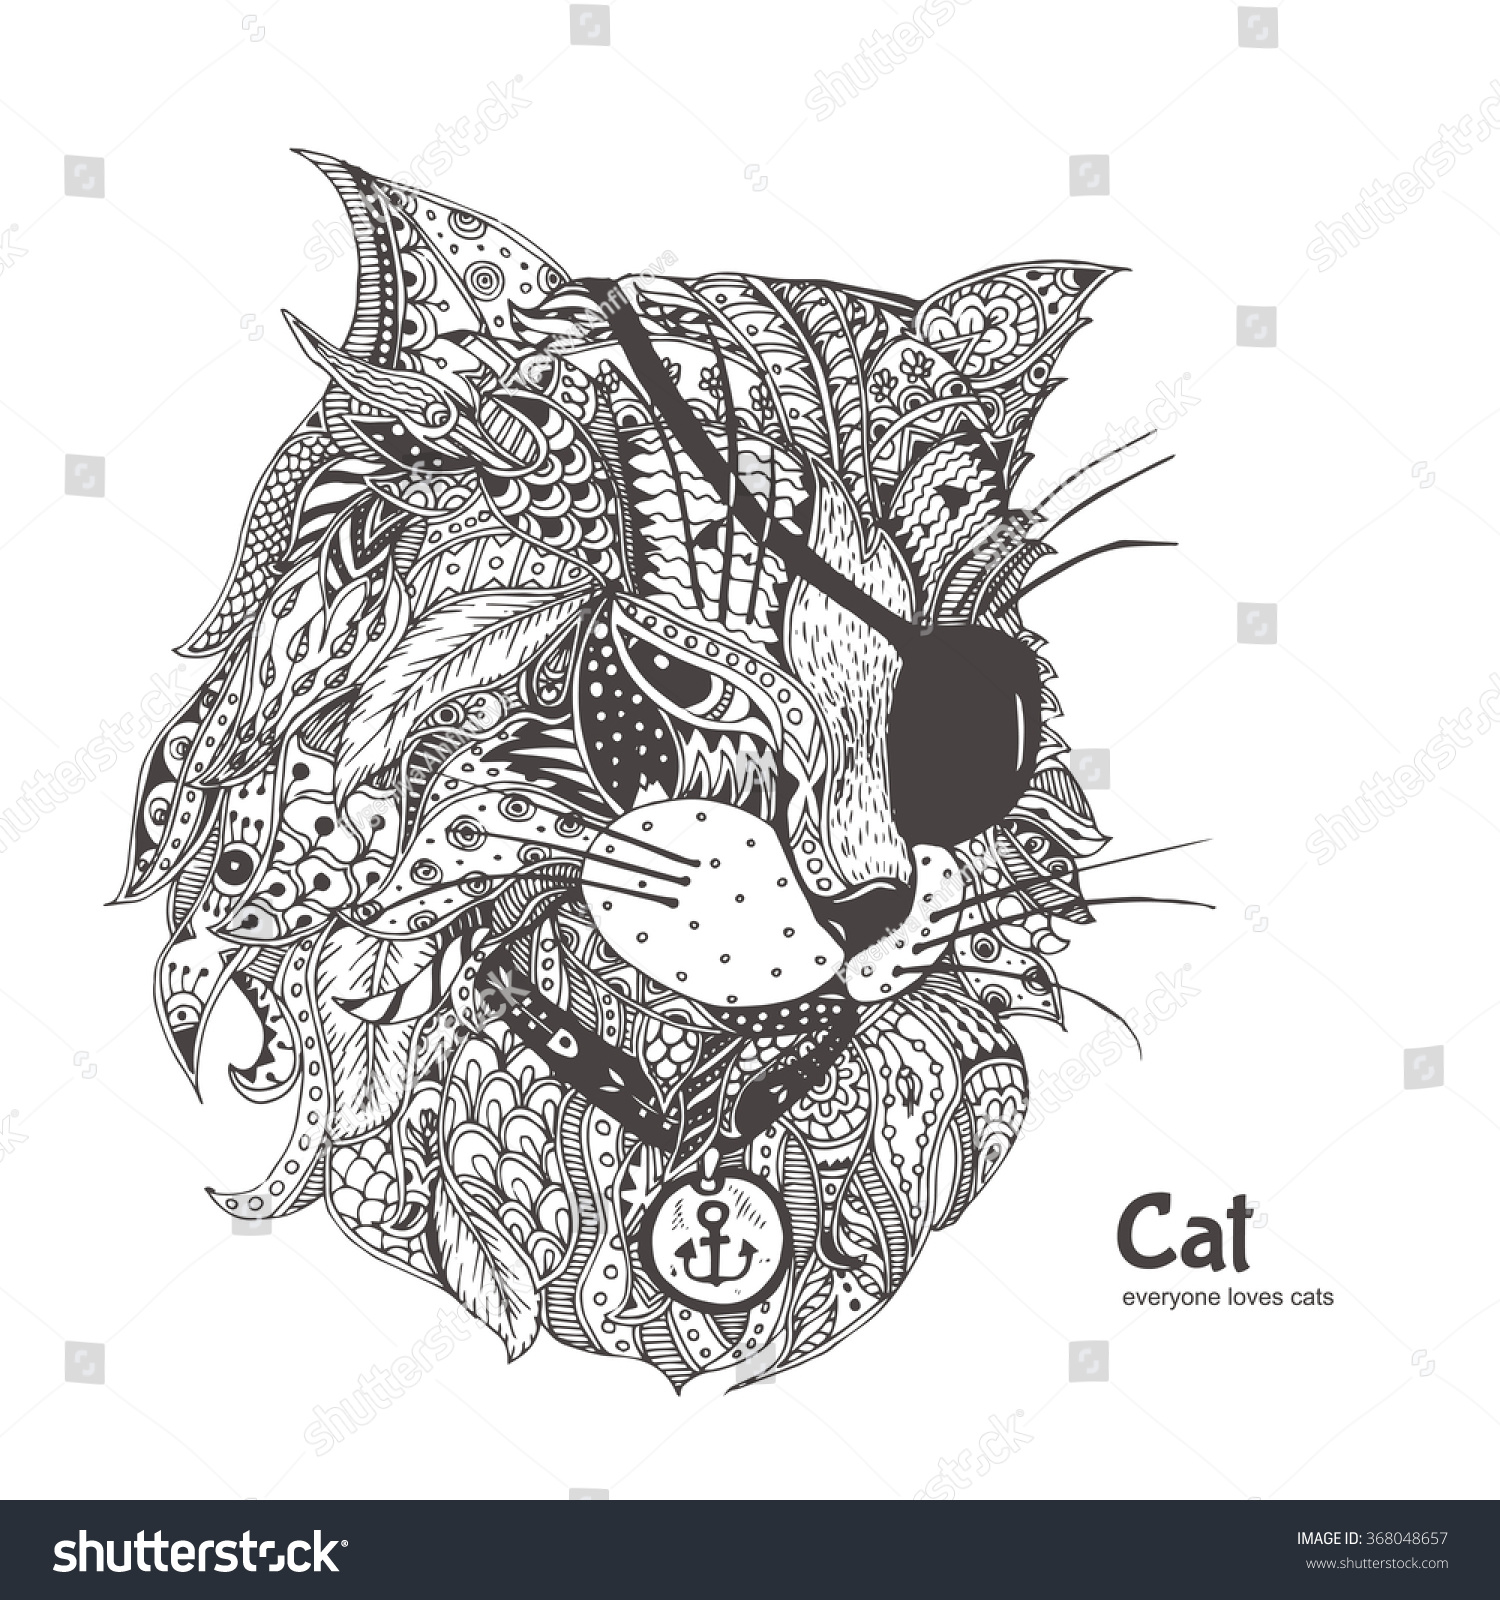 Zen cat coloring page - Cat Pirate Hand Drawn Cat With Ethnic Floral Doodle Pattern Coloring Page